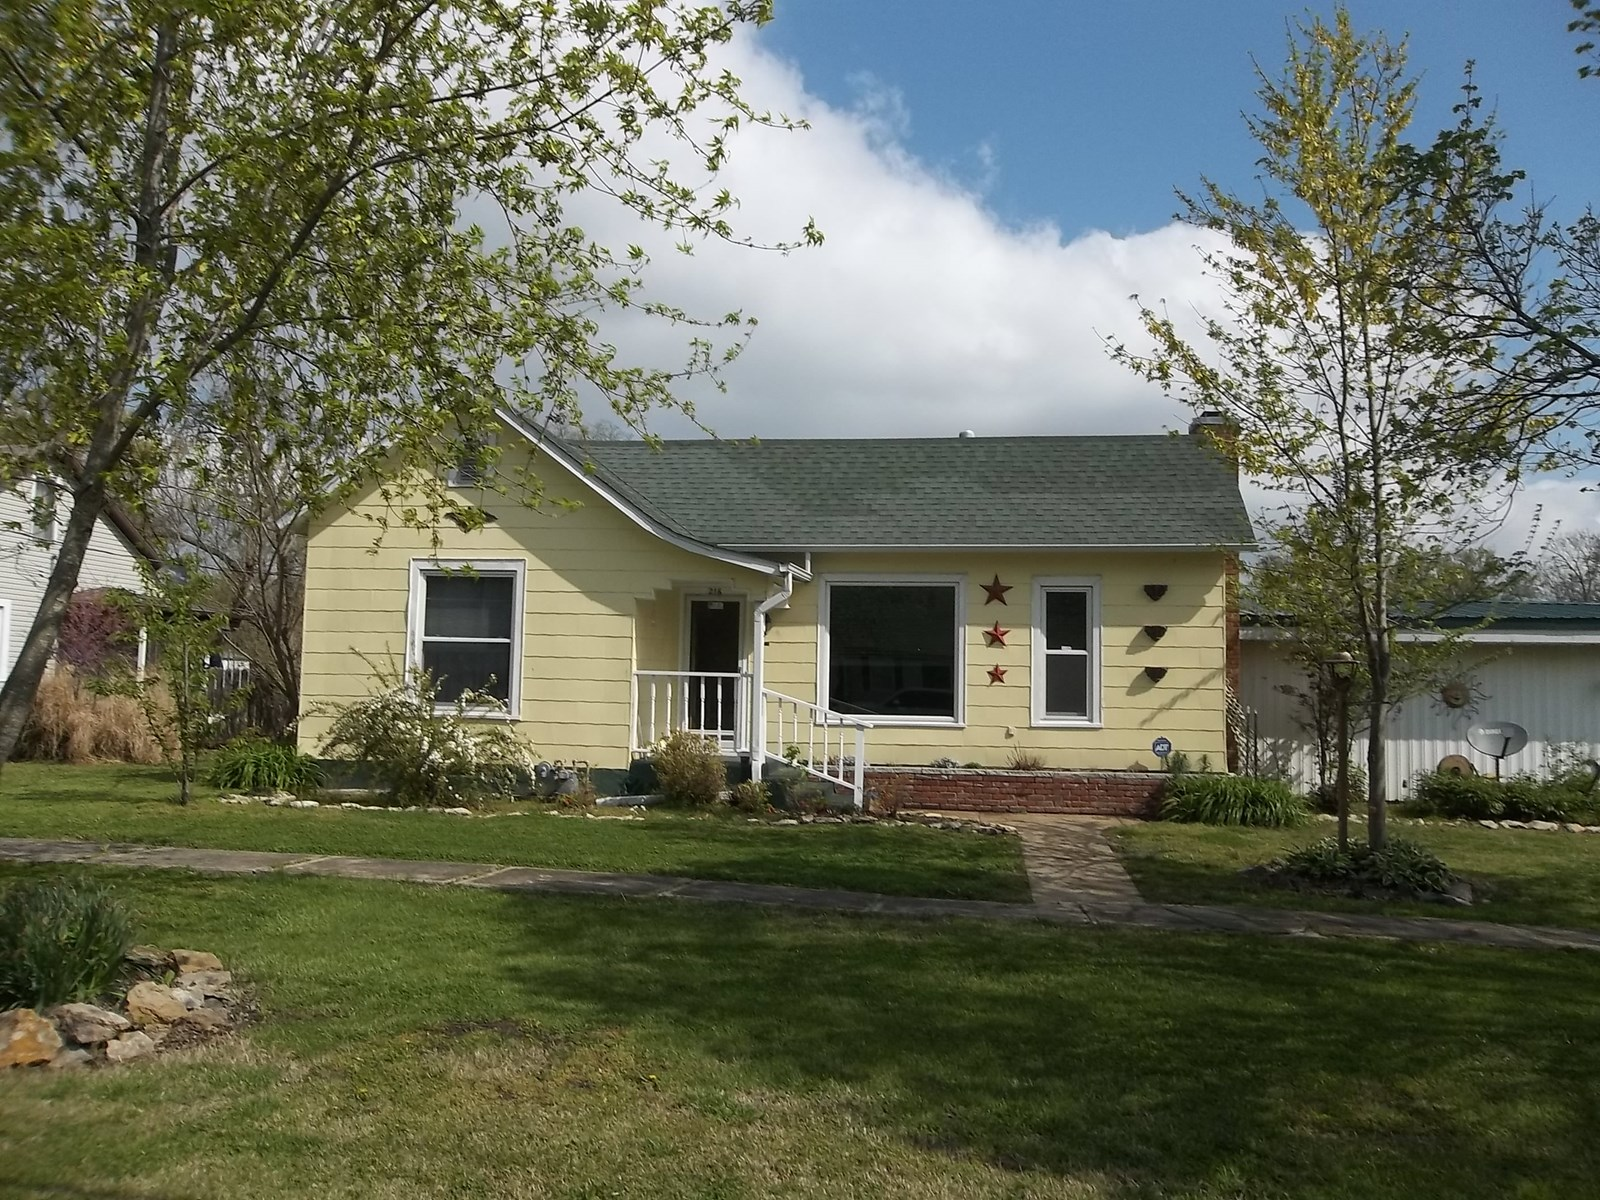 Home for Sale in Erie, Kansas